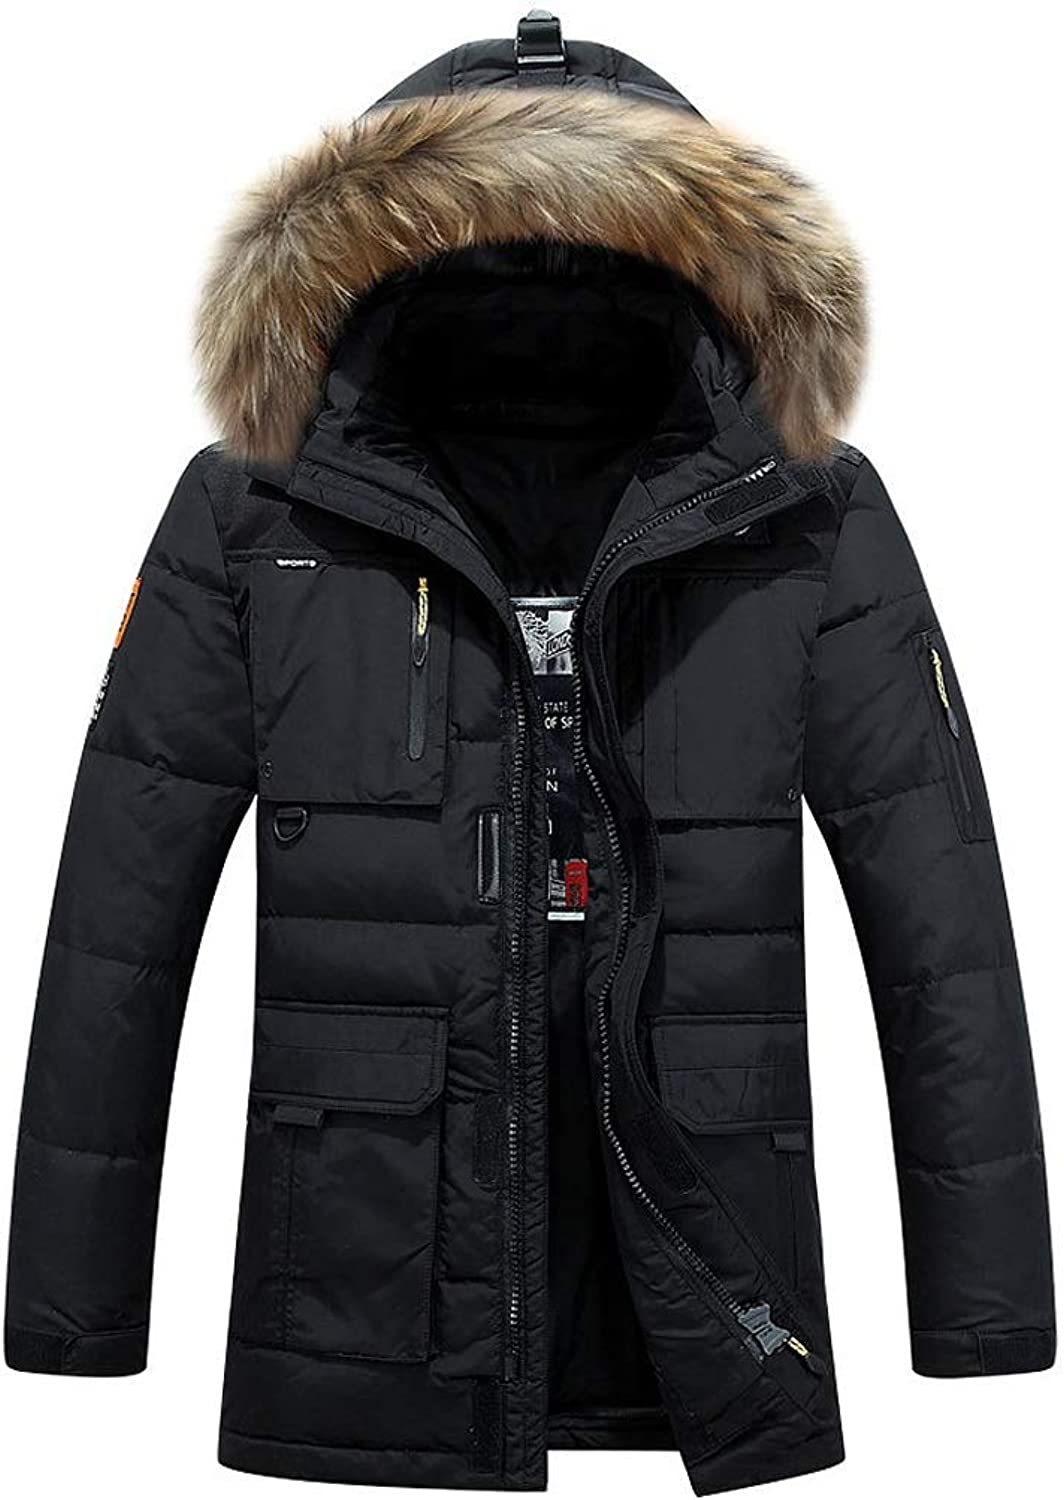 New Down Jacket, Men's Casual Short Hooded Jacket with Large Fur Collar, Winter Outdoor Cold Warm Clothing (color   Black, Size   XL)